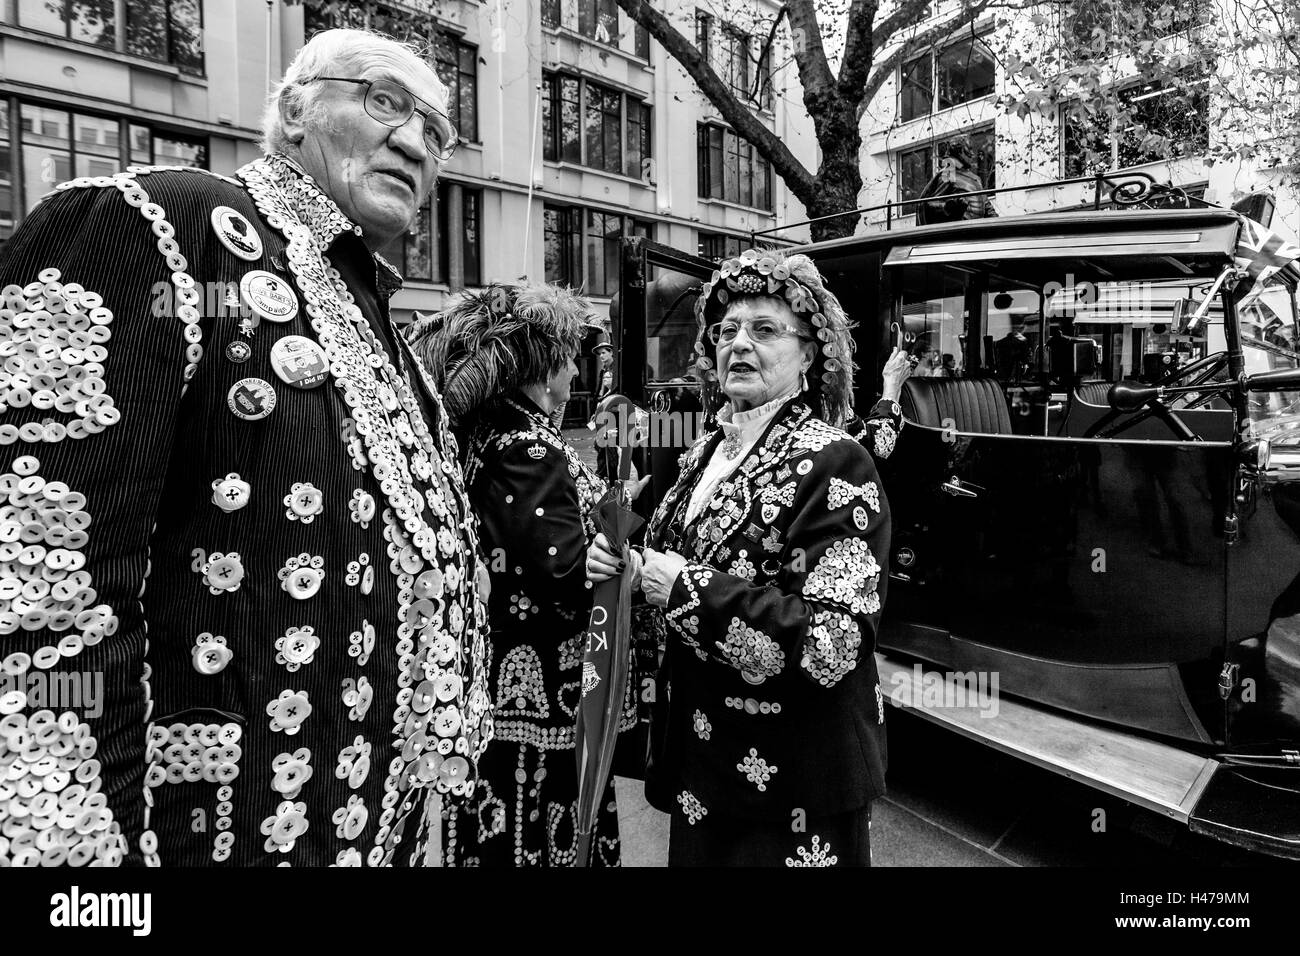 Pearly Kings and Queens Outside The Church Of St Mary-le-Bow (Bow Bells) After The Harvest Festival, London, England - Stock Image